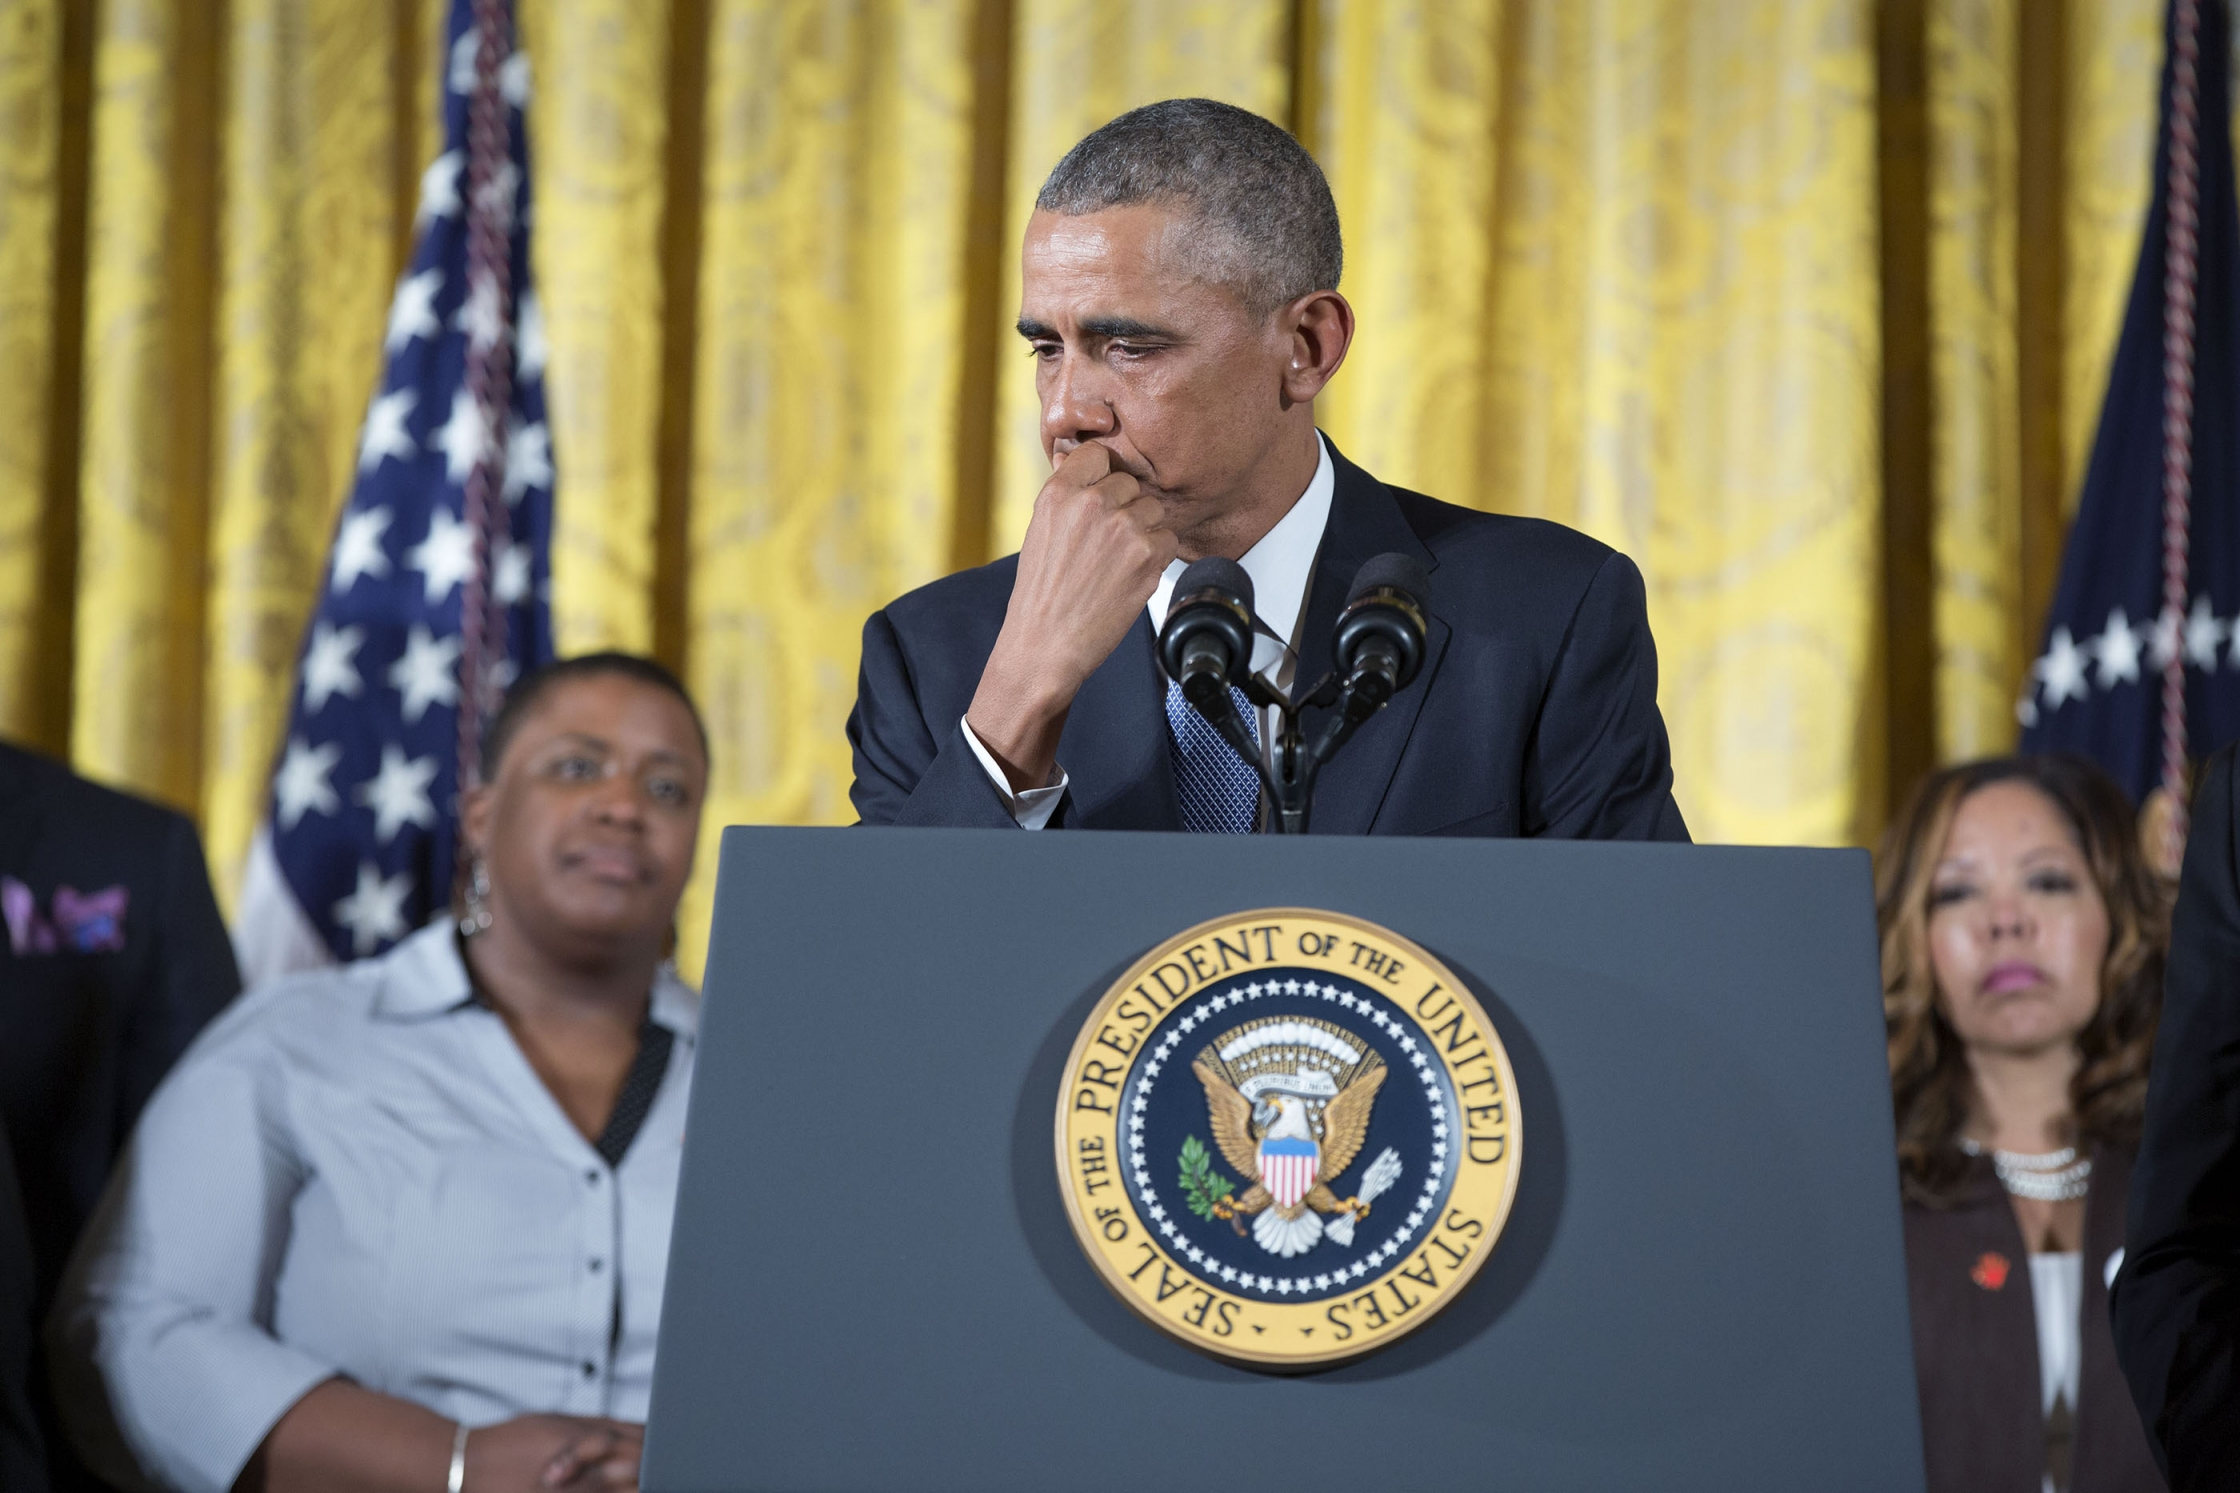 President Barack Obama tears up as he delivers remarks to announce steps that the administration is taking to reduce gun violence, in the East Room of the White House, Jan. 5, 2016. (Official White House Photo by Pete Souza)